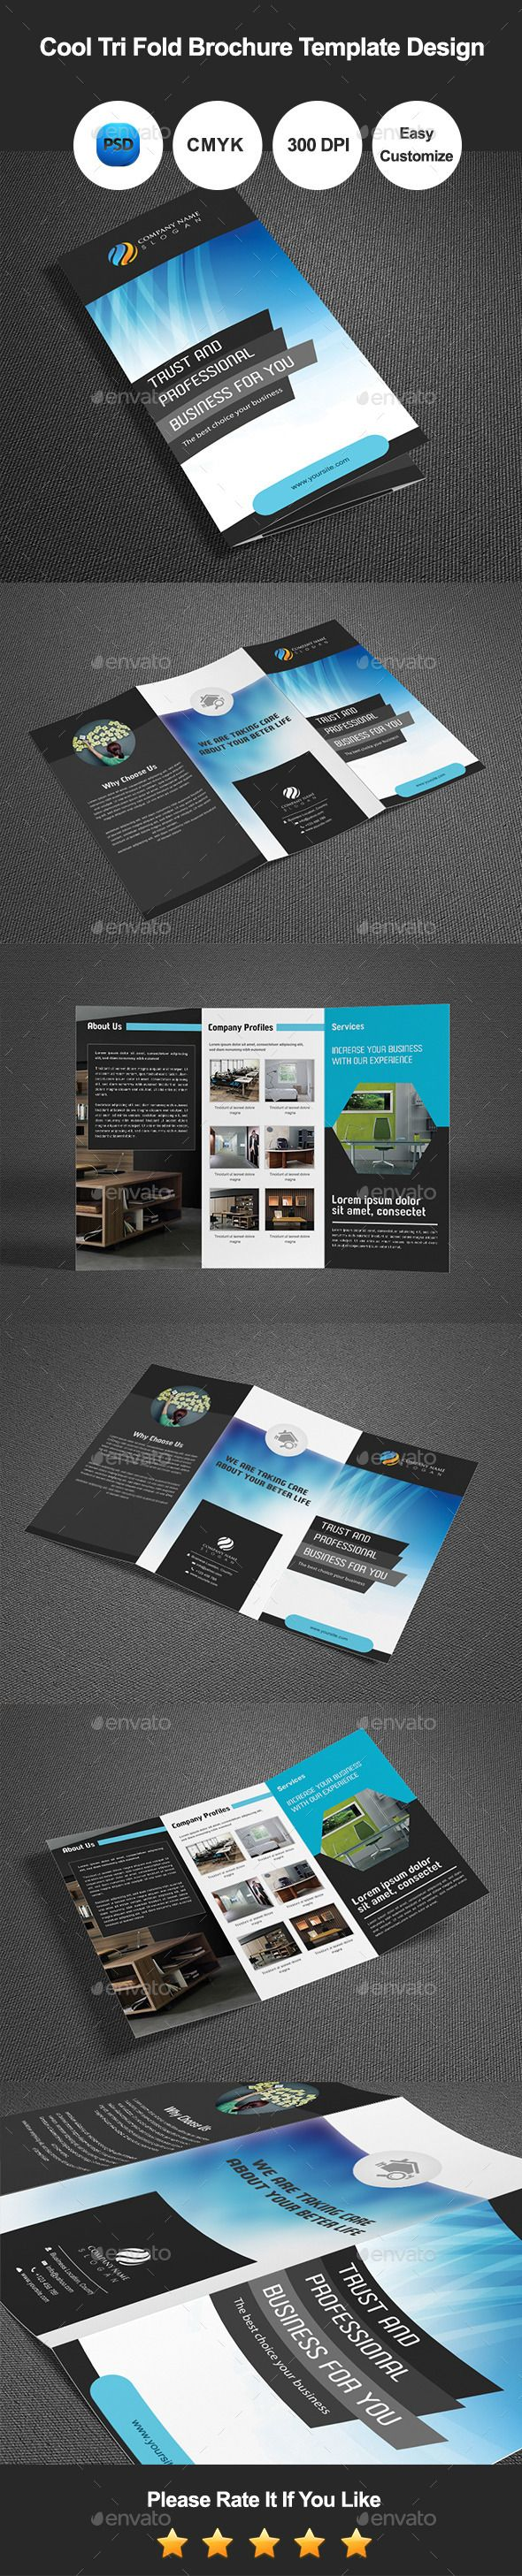 cool brochure templates - best 25 tri fold brochure template ideas only on